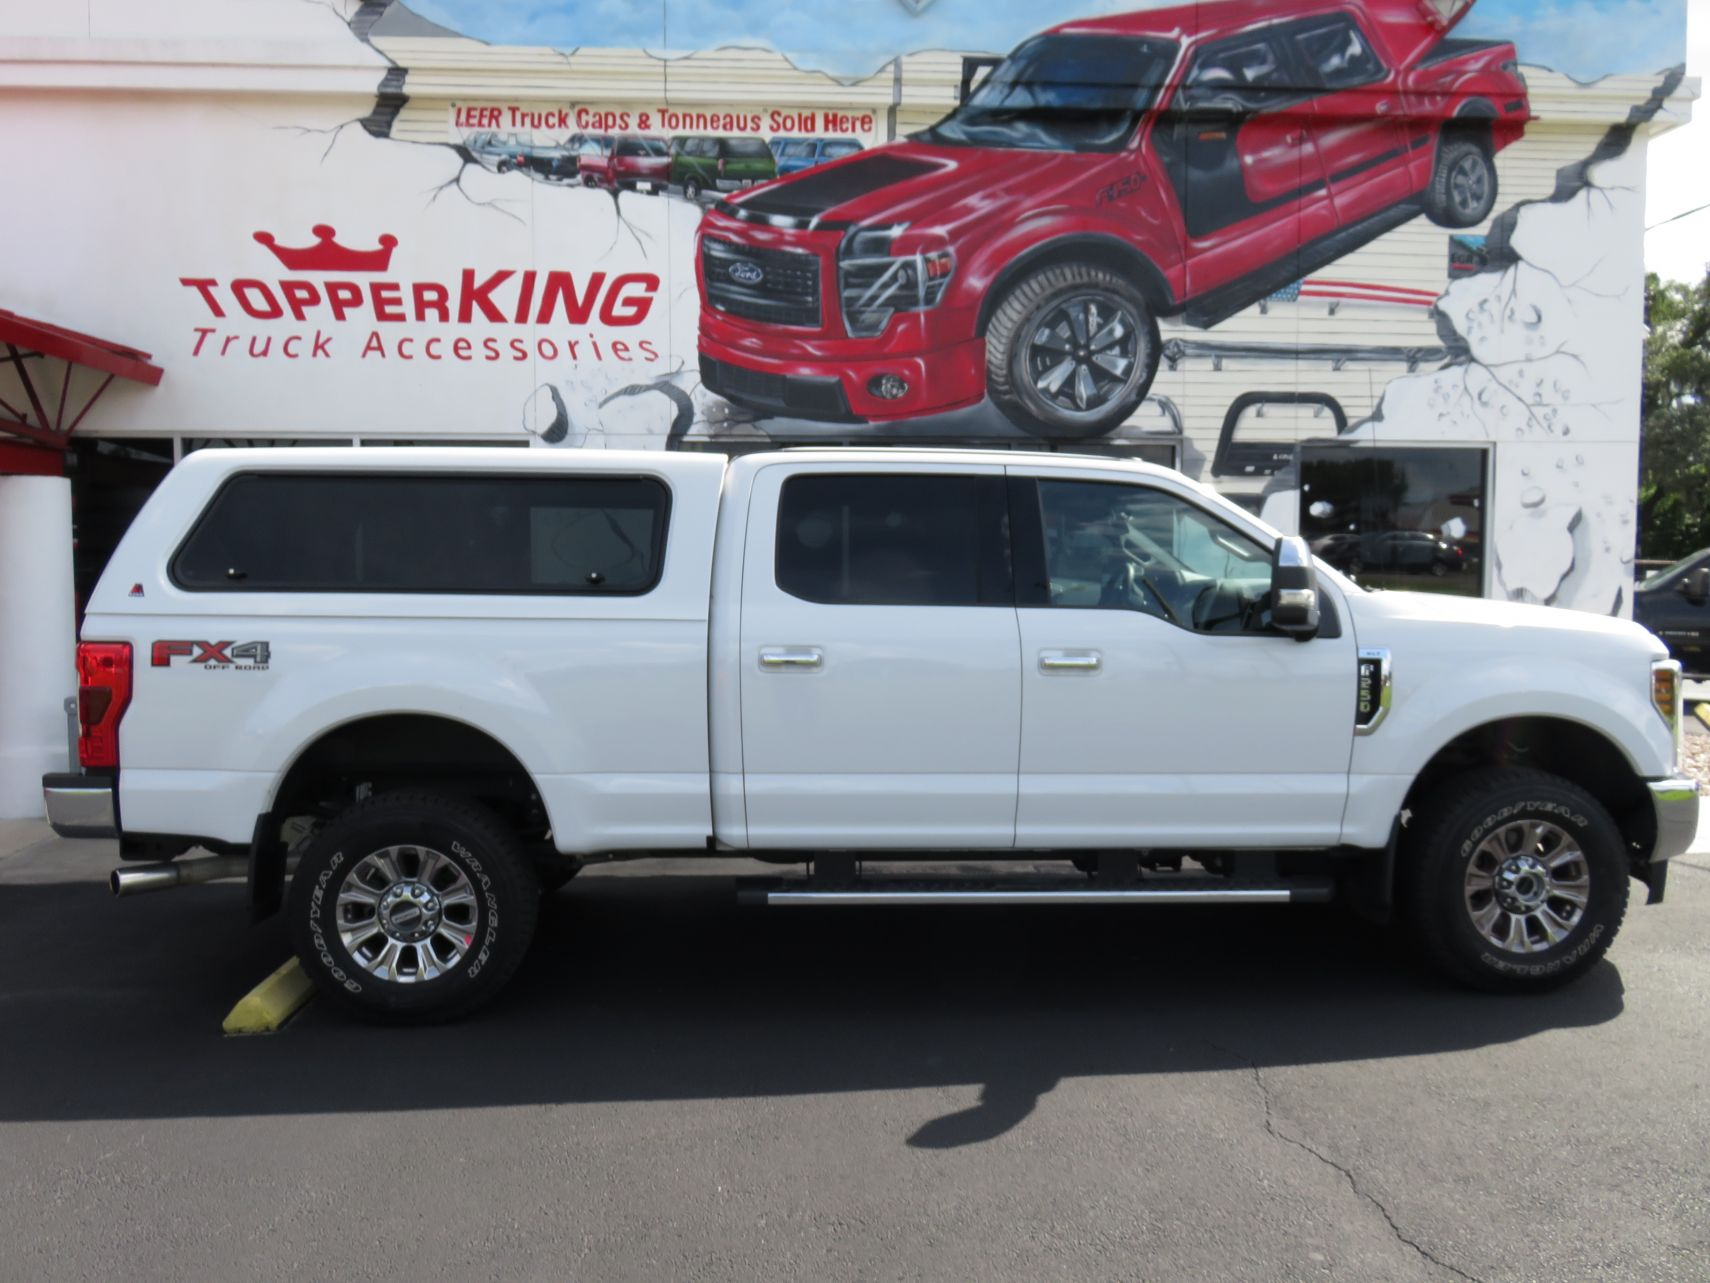 2018 White Ford F250 Super Duty LEER 100XR - TopperKING